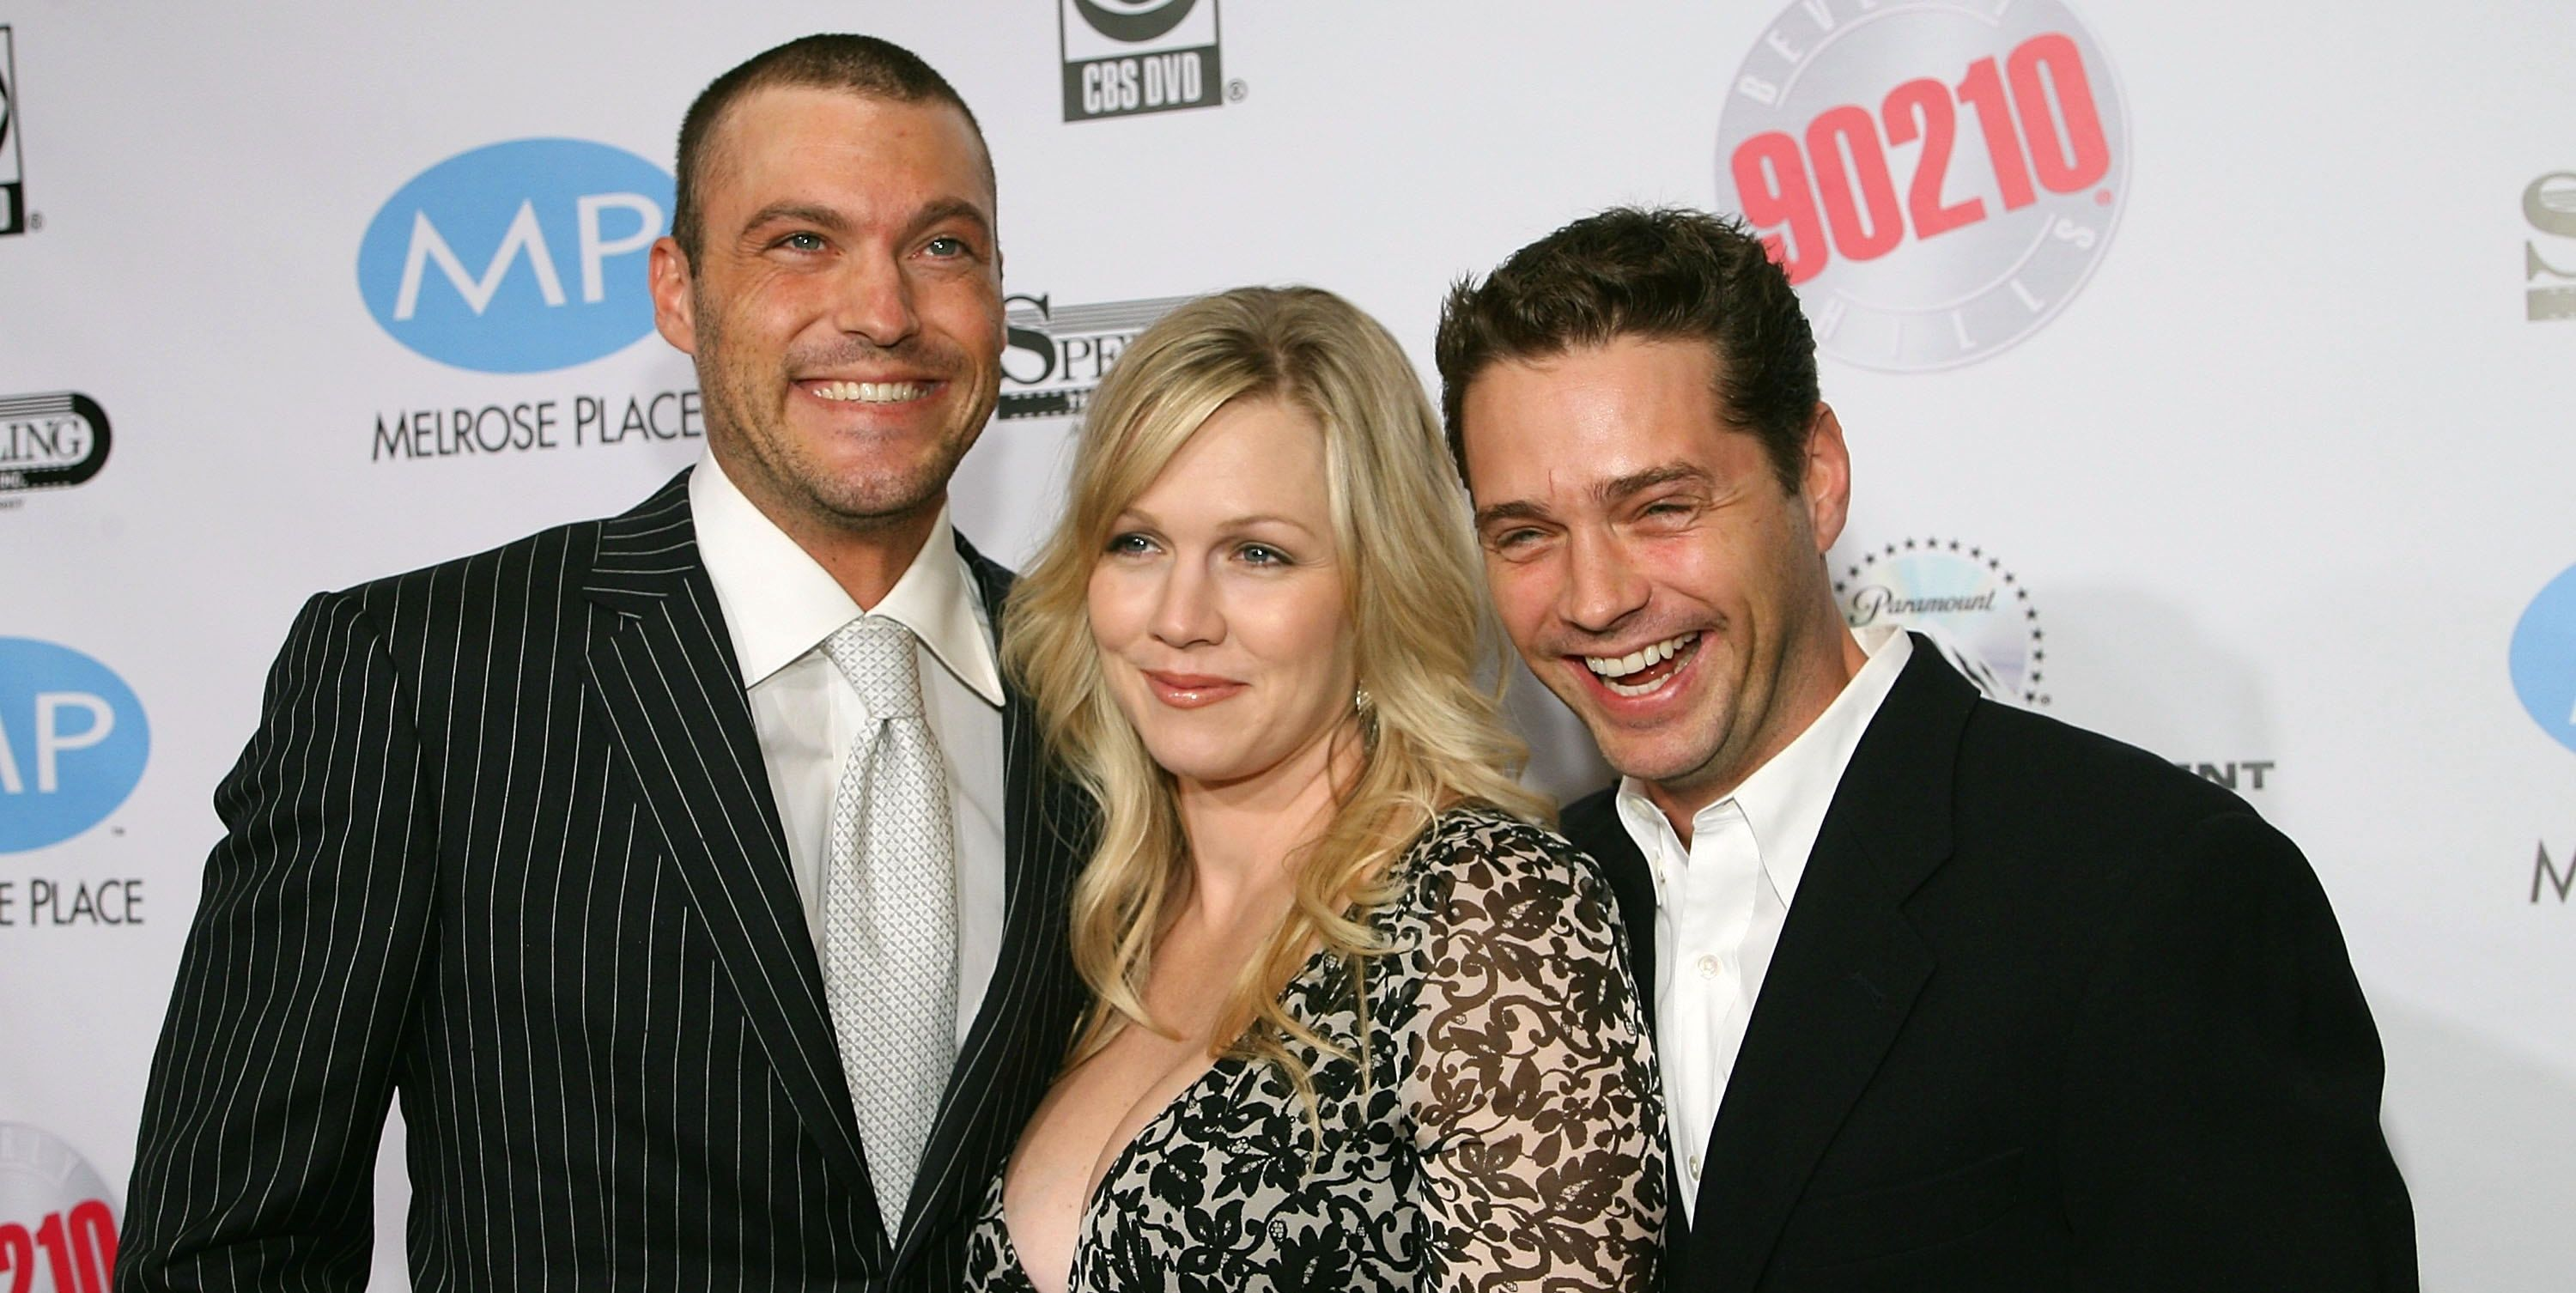 Beverly Hills 90210 The Complete First Season DVD Party - Arrivals